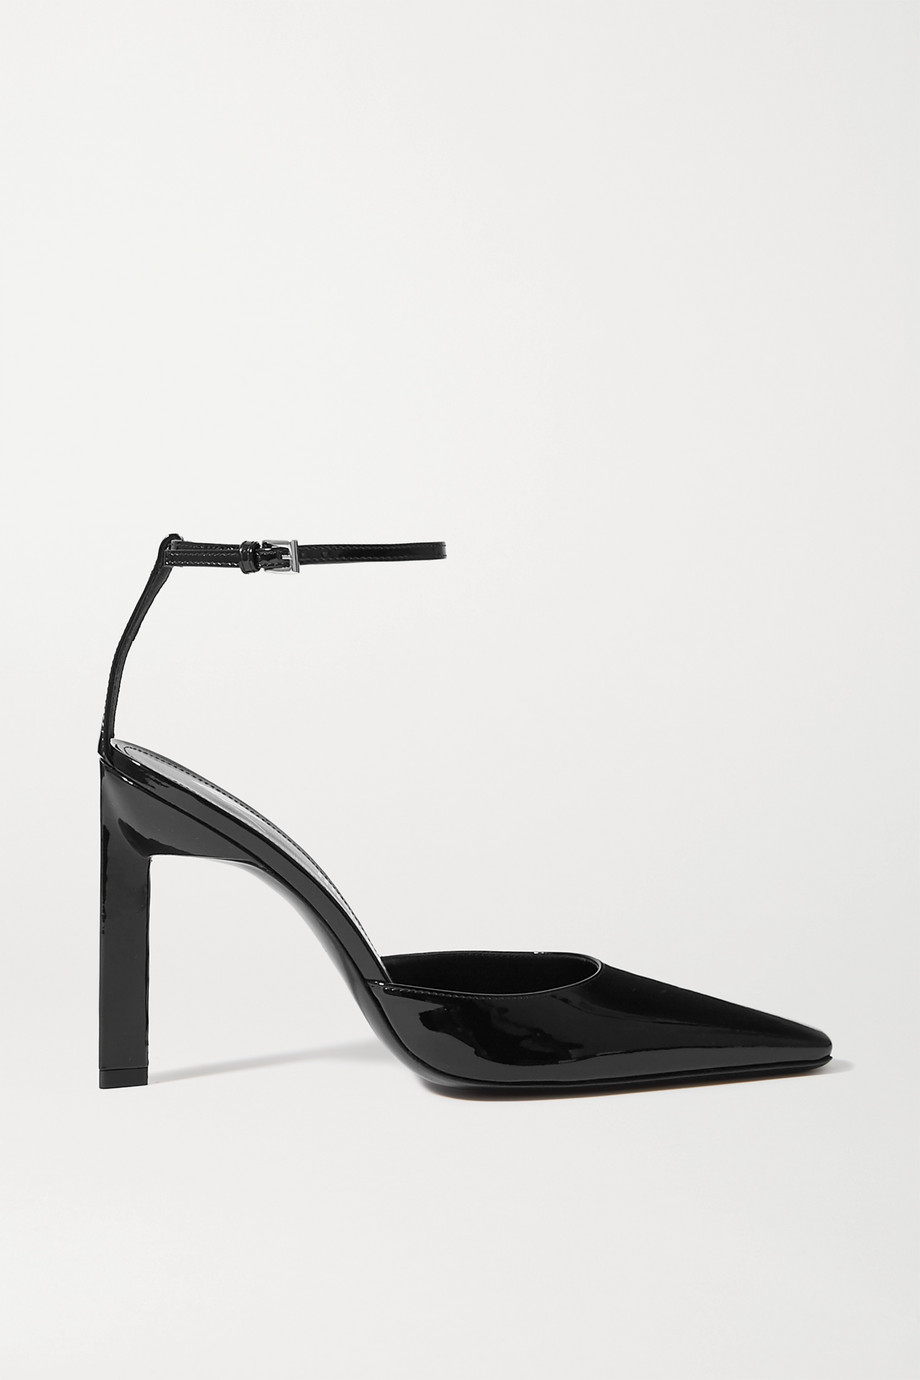 The Attico Patent-leather pumps